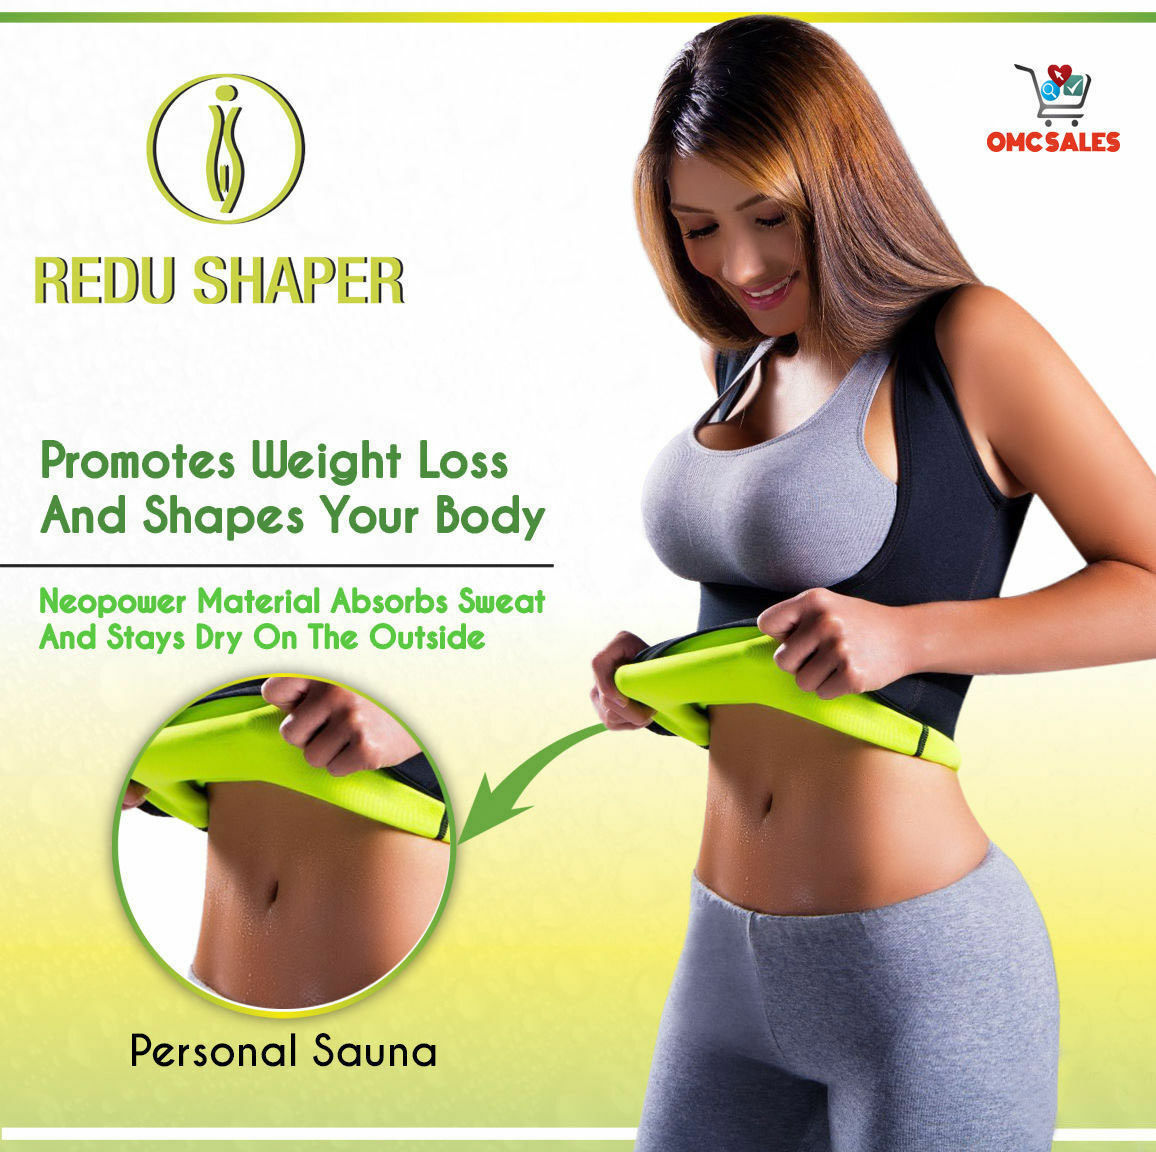 2 REDU SHAPER WOMEN SMALL, hot, redushaper, cami, osmotic, tecnomed